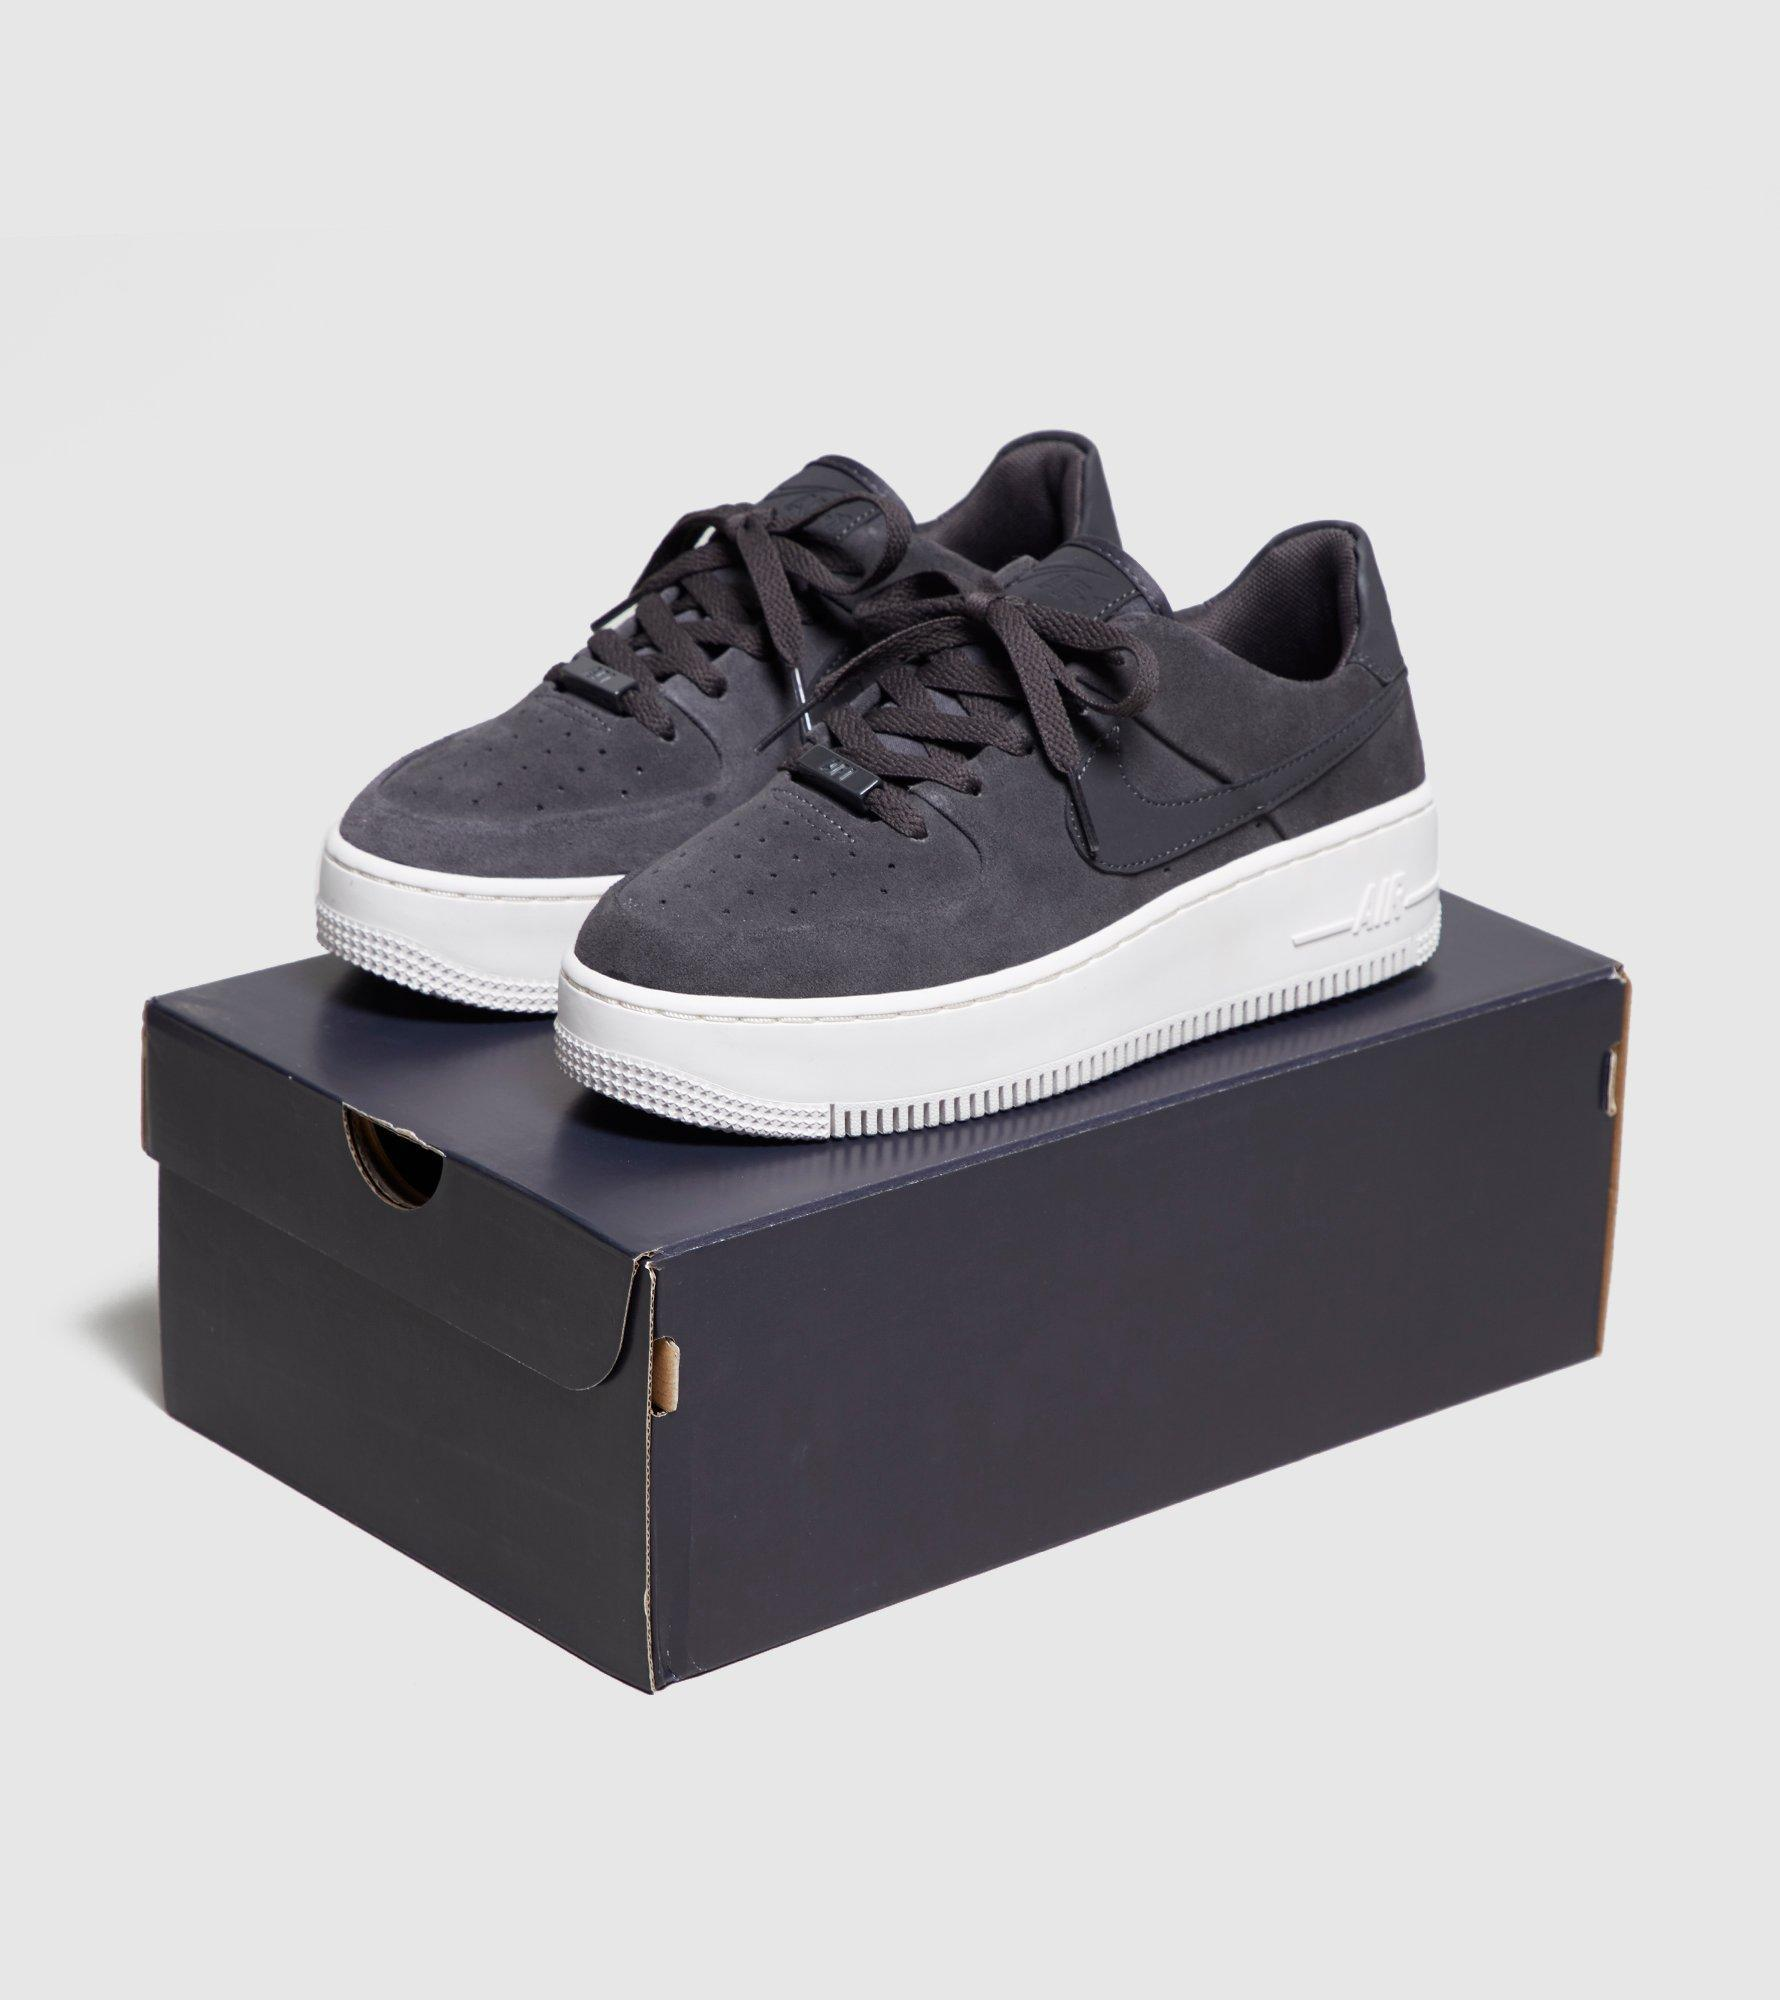 dd6f6c12510 Nike Air Force 1 Sage Low Women s in Gray - Lyst